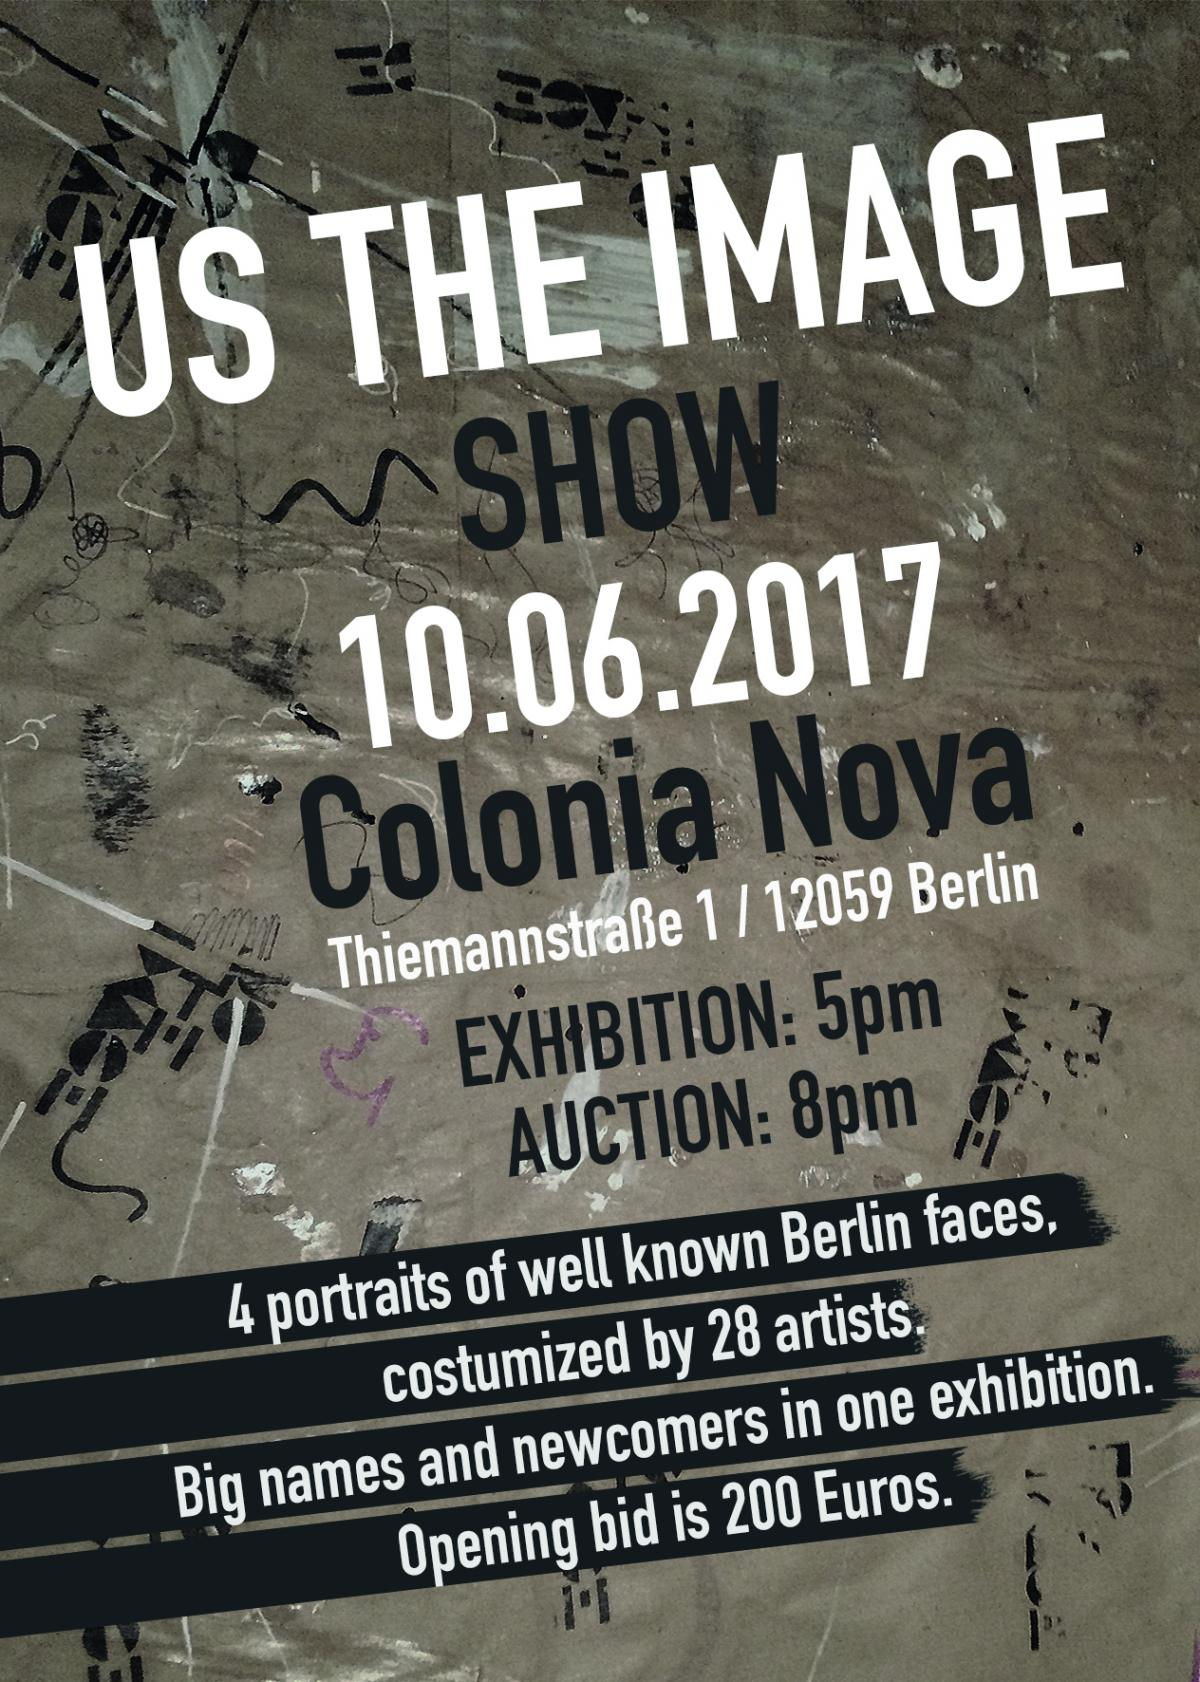 Colonia Nova - Auction & Exhibition